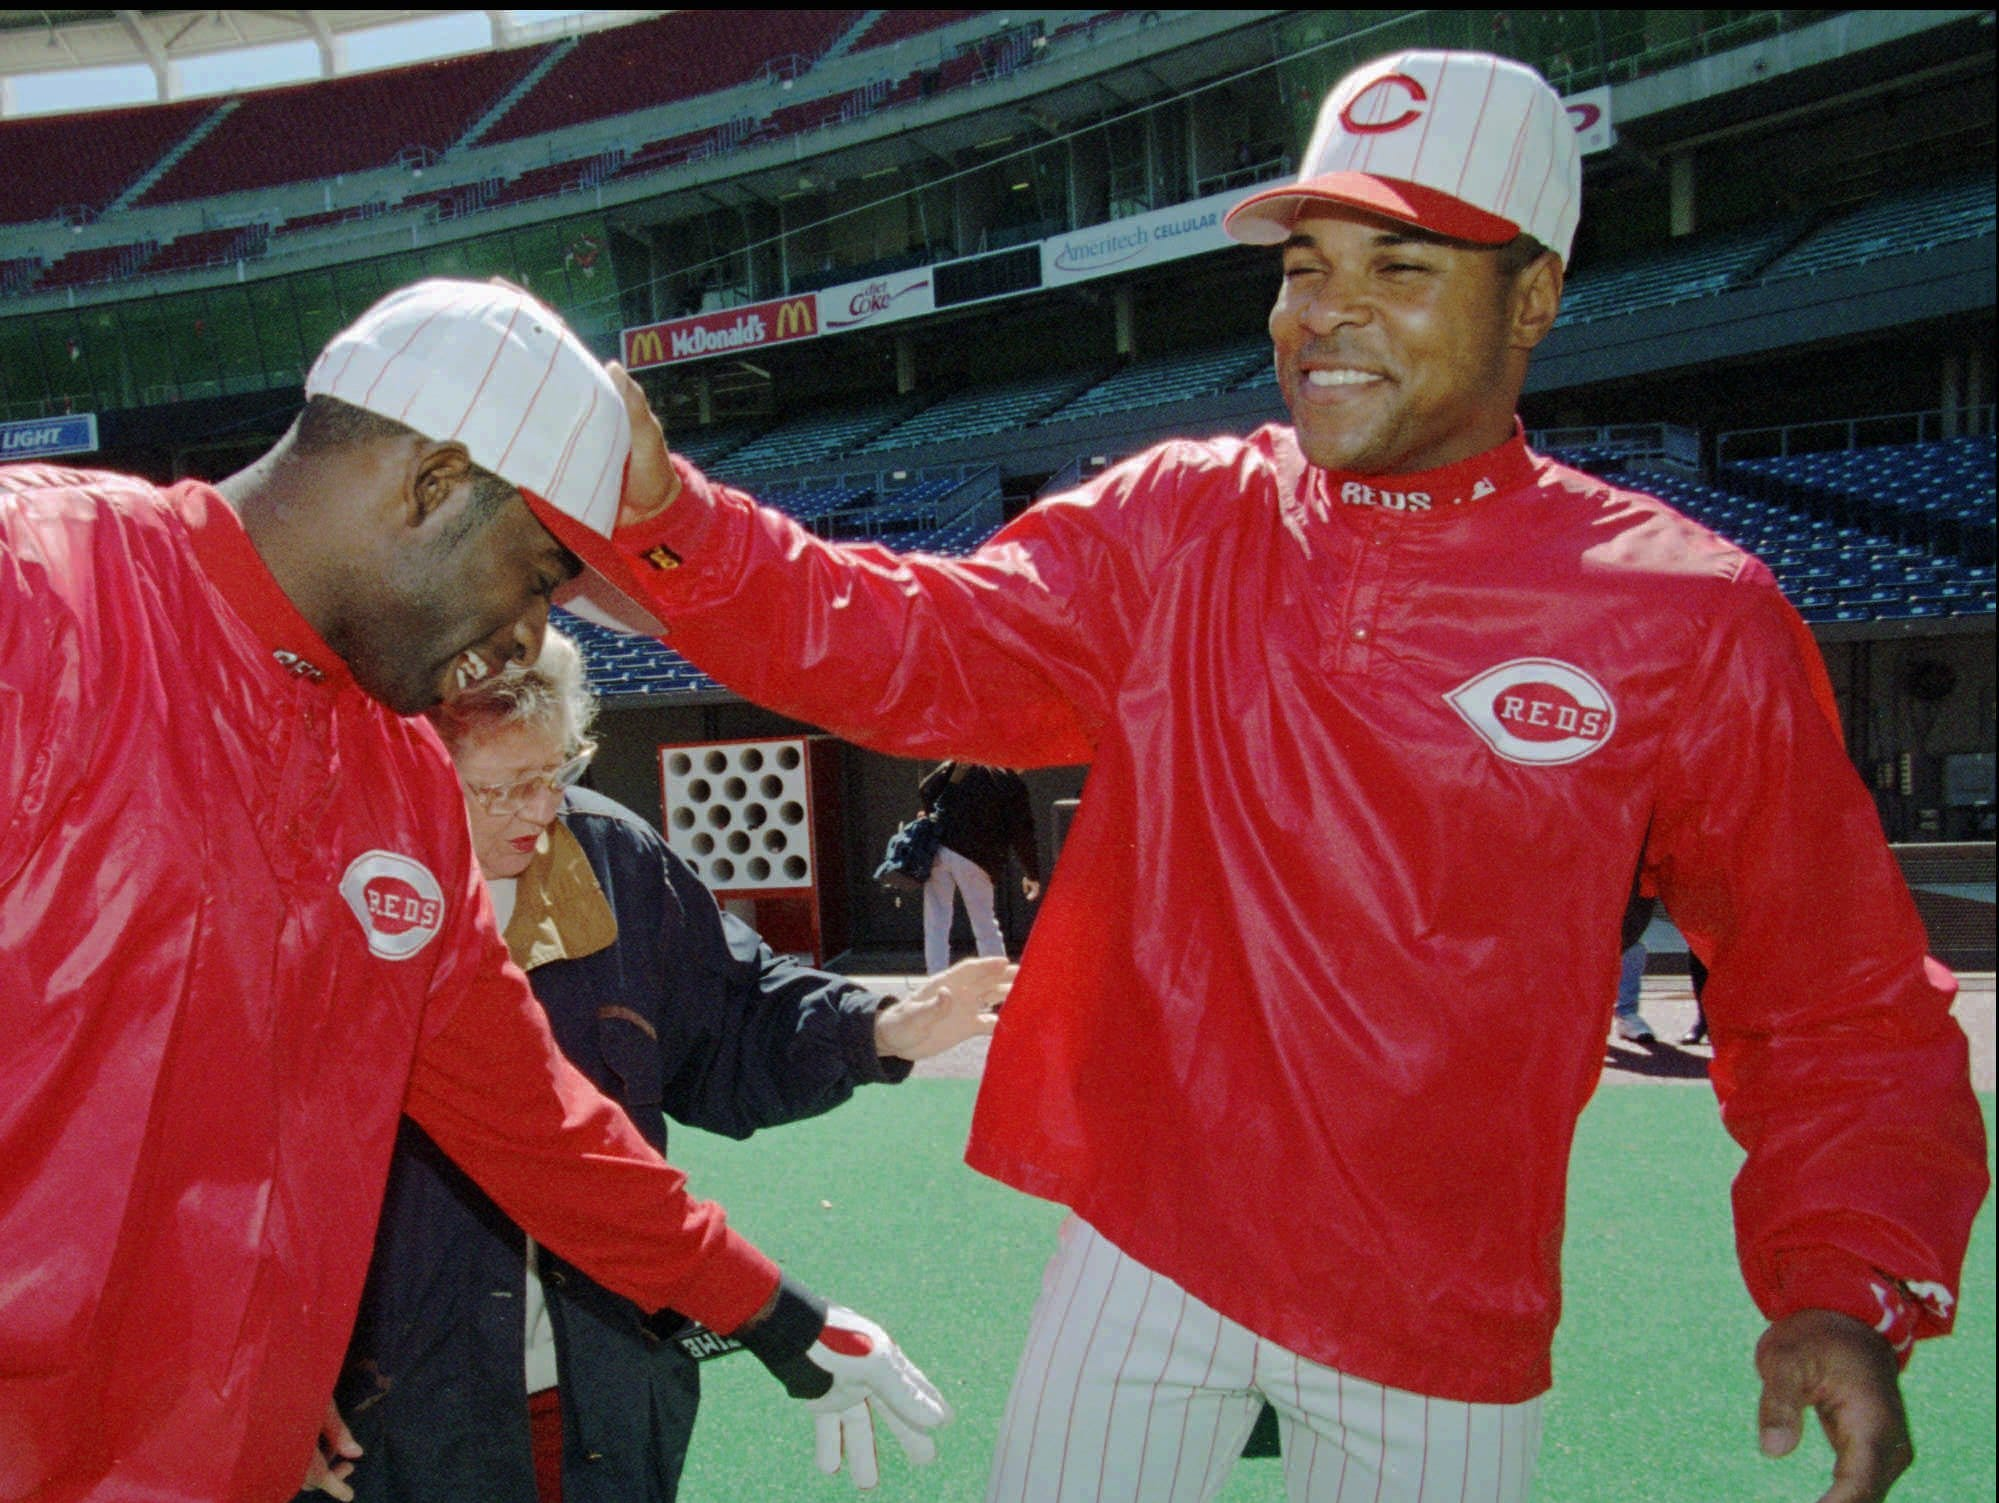 Text: Cincinnati Reds shortstop Barry Larkin, right, slaps Deion Sanders on the head as Sanders jokes with Larkin and Reds owner Marge Schott, center, during practice Monday, March 31, 1997, in Cincinnati. The Reds open against the Colorado Rockies Tuesday afternoon. (AP Photo/Al Behrman)